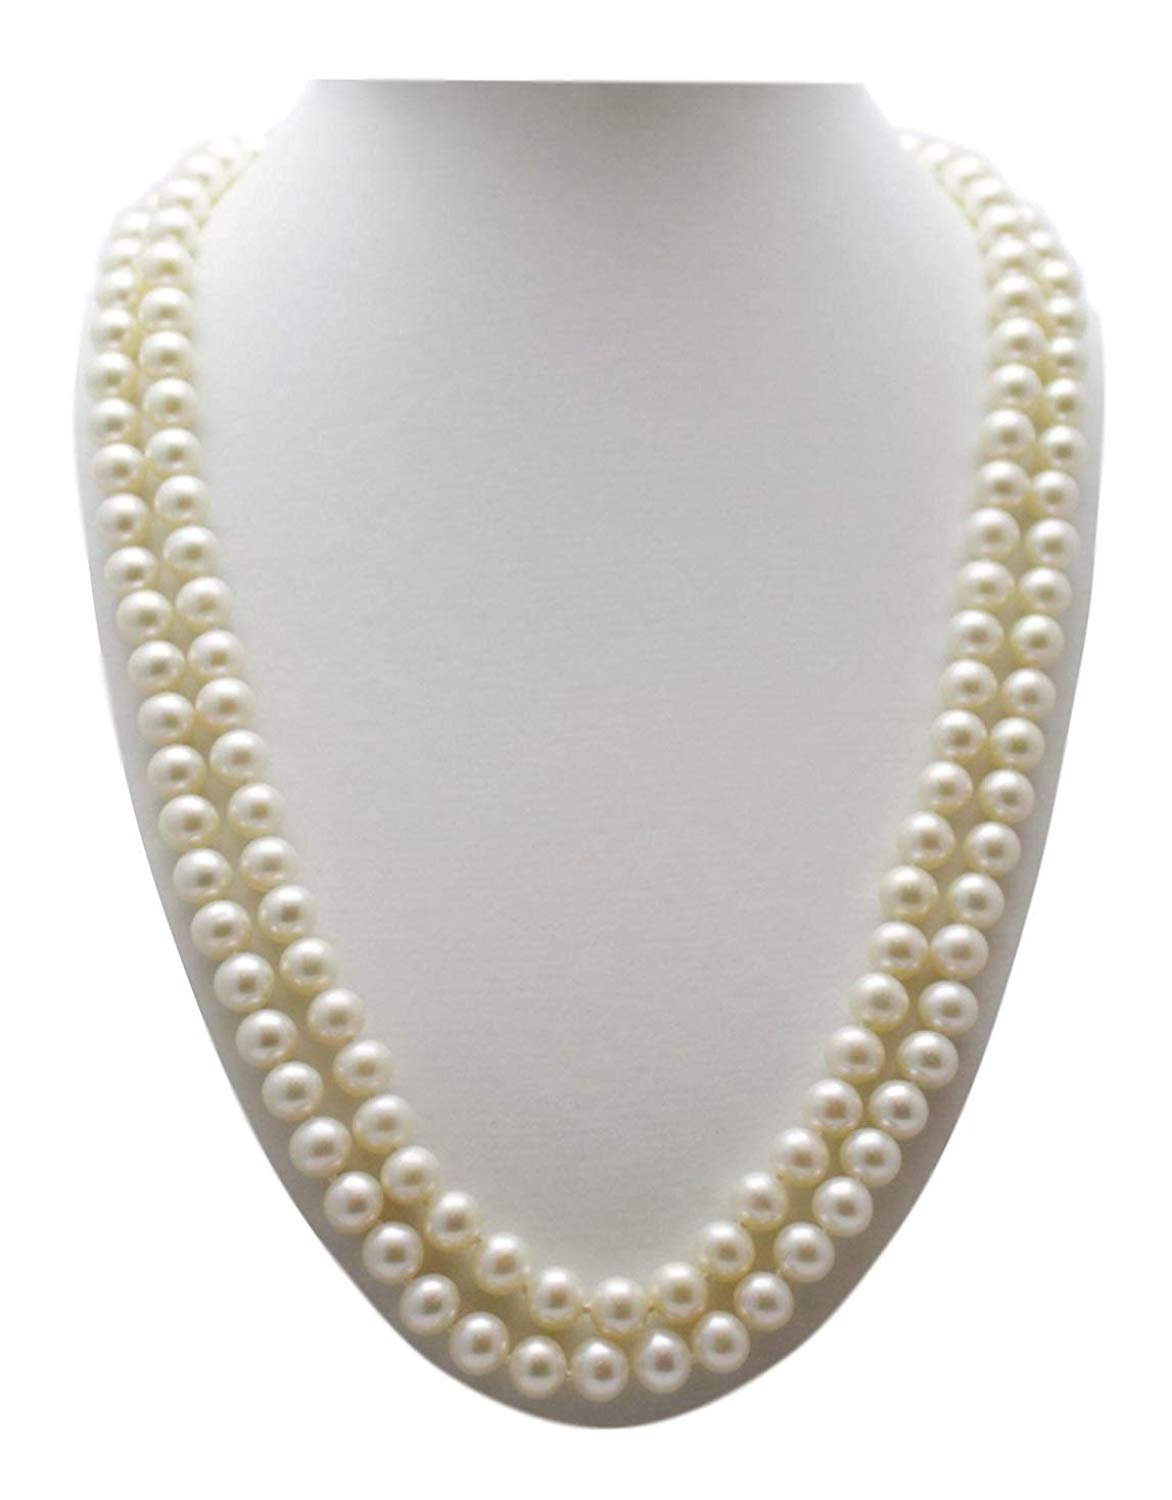 Shoppe23 Two Strand Pearl Necklace Set Elegant 6mm Pearls Bridal Bridesmaid Jewelry Boxed